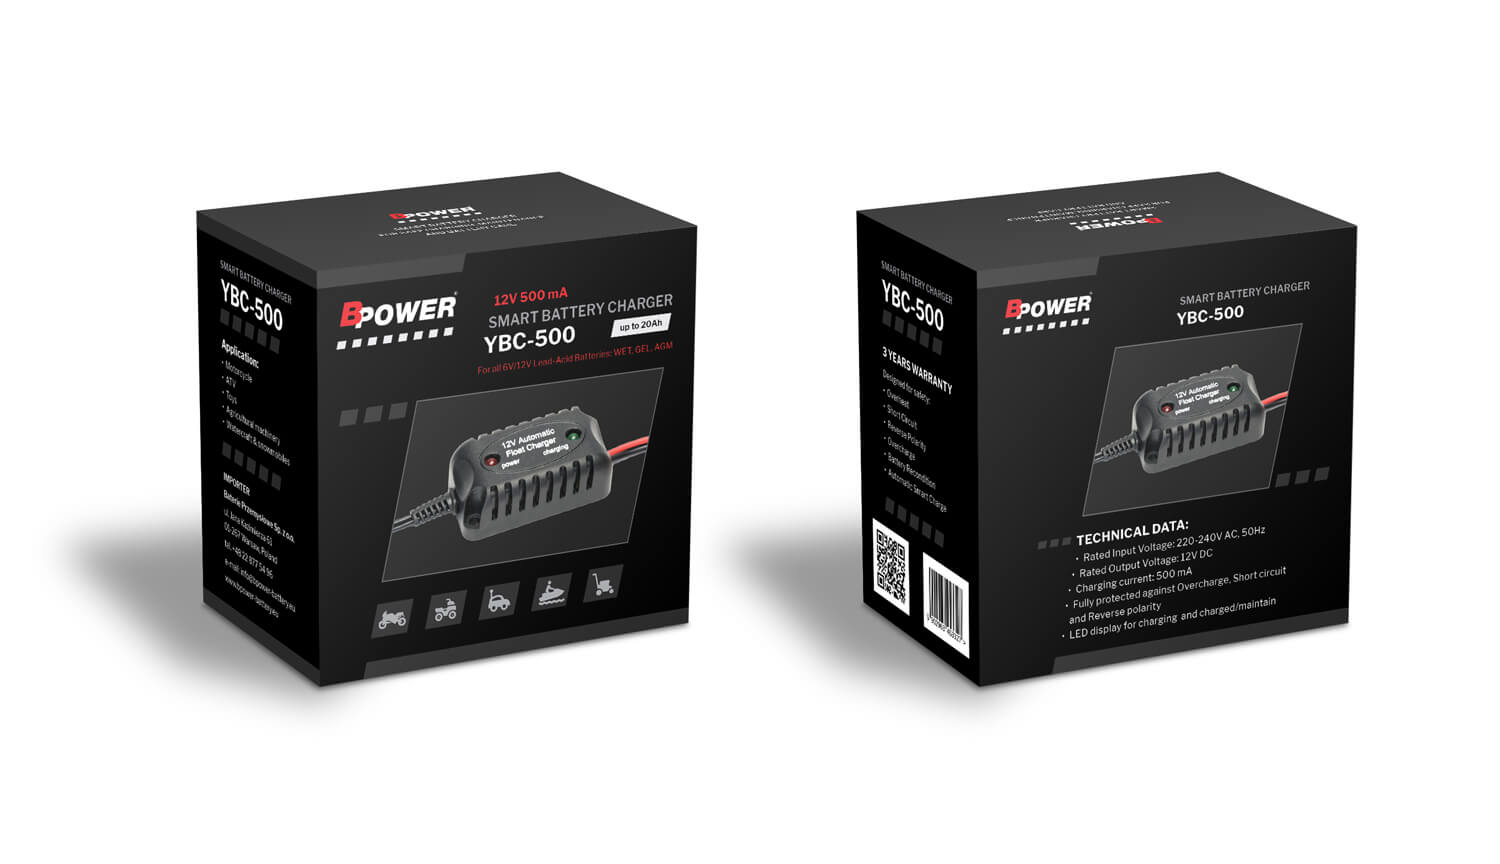 Design example - packaging